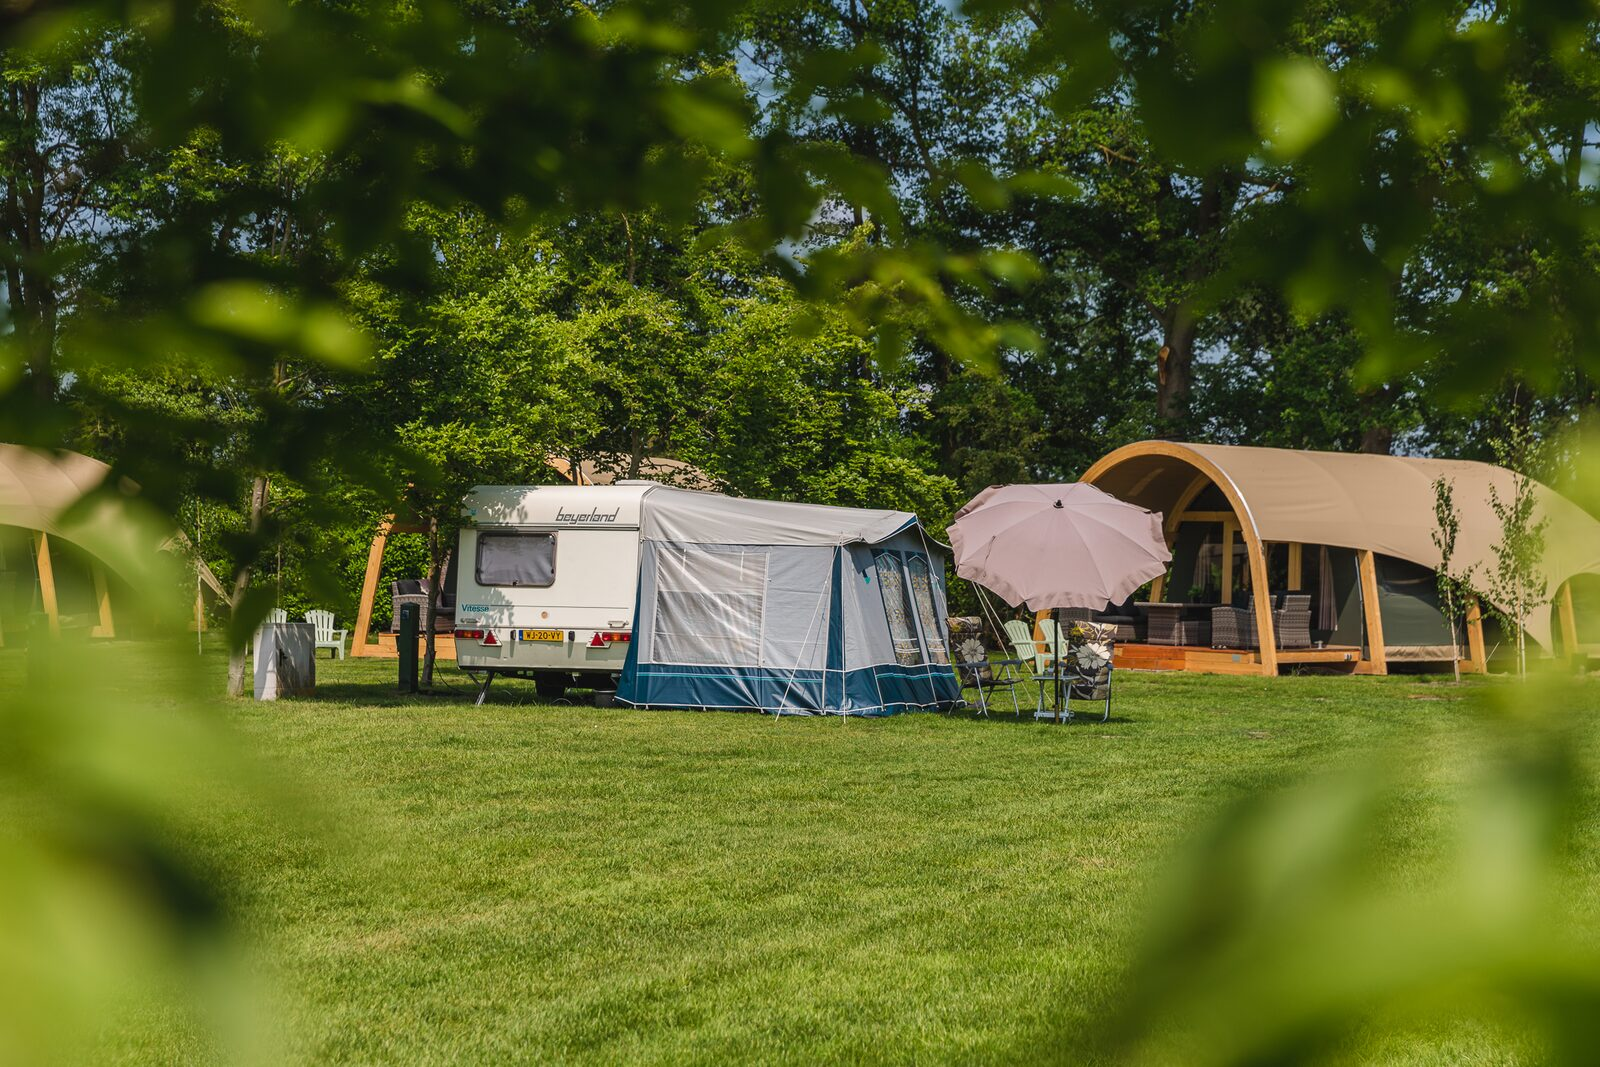 Camping in der Natur